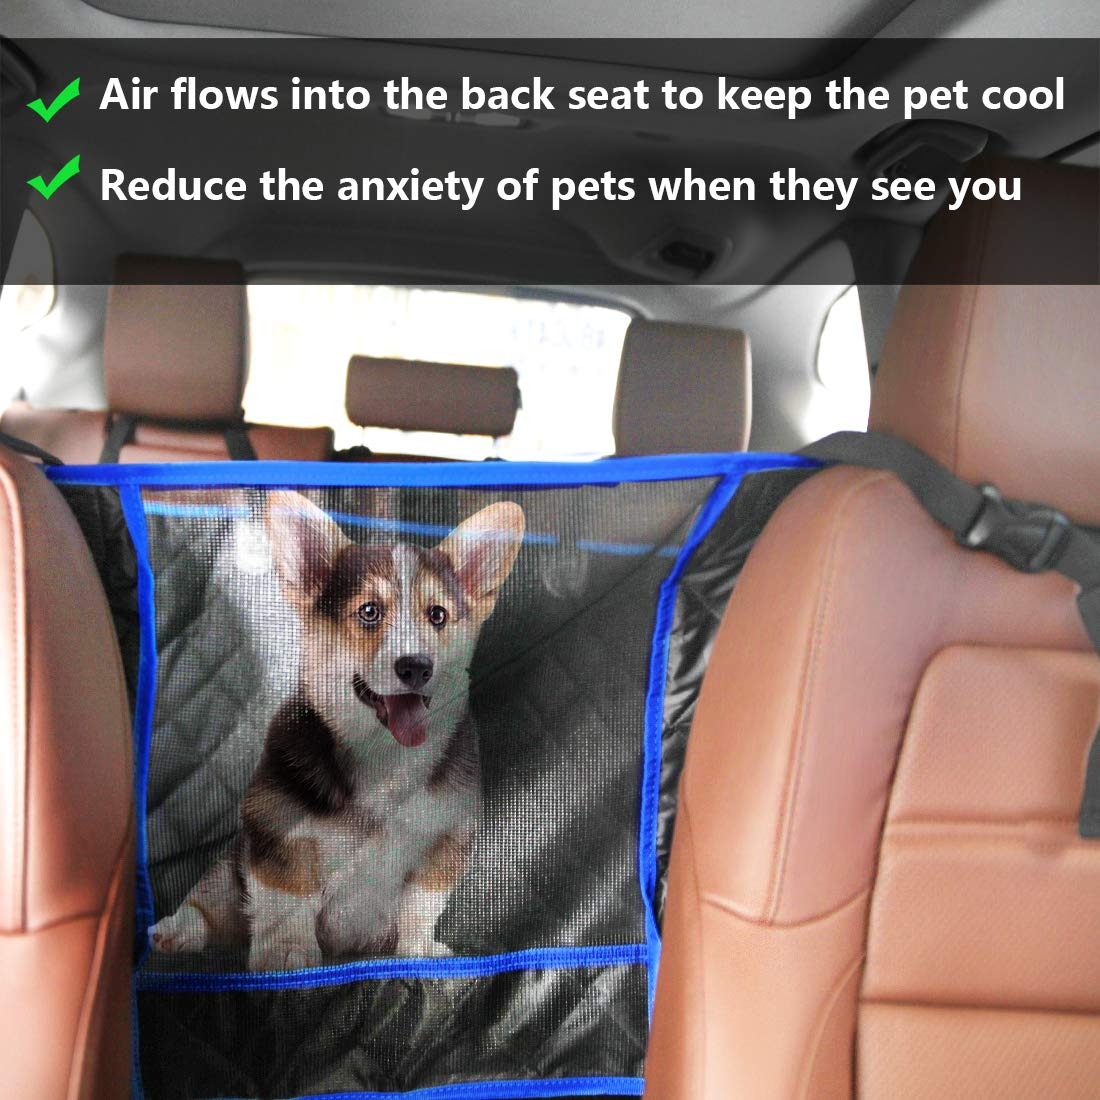 SUPSOO Dog Car Seat Cover Waterproof Durable Anti-Scratch Nonslip Back Seat Pet Protection Dog Travel Hammock with Mesh Window and Side Flaps for Cars/Trucks/SUV by SUPSOO (Image #2)